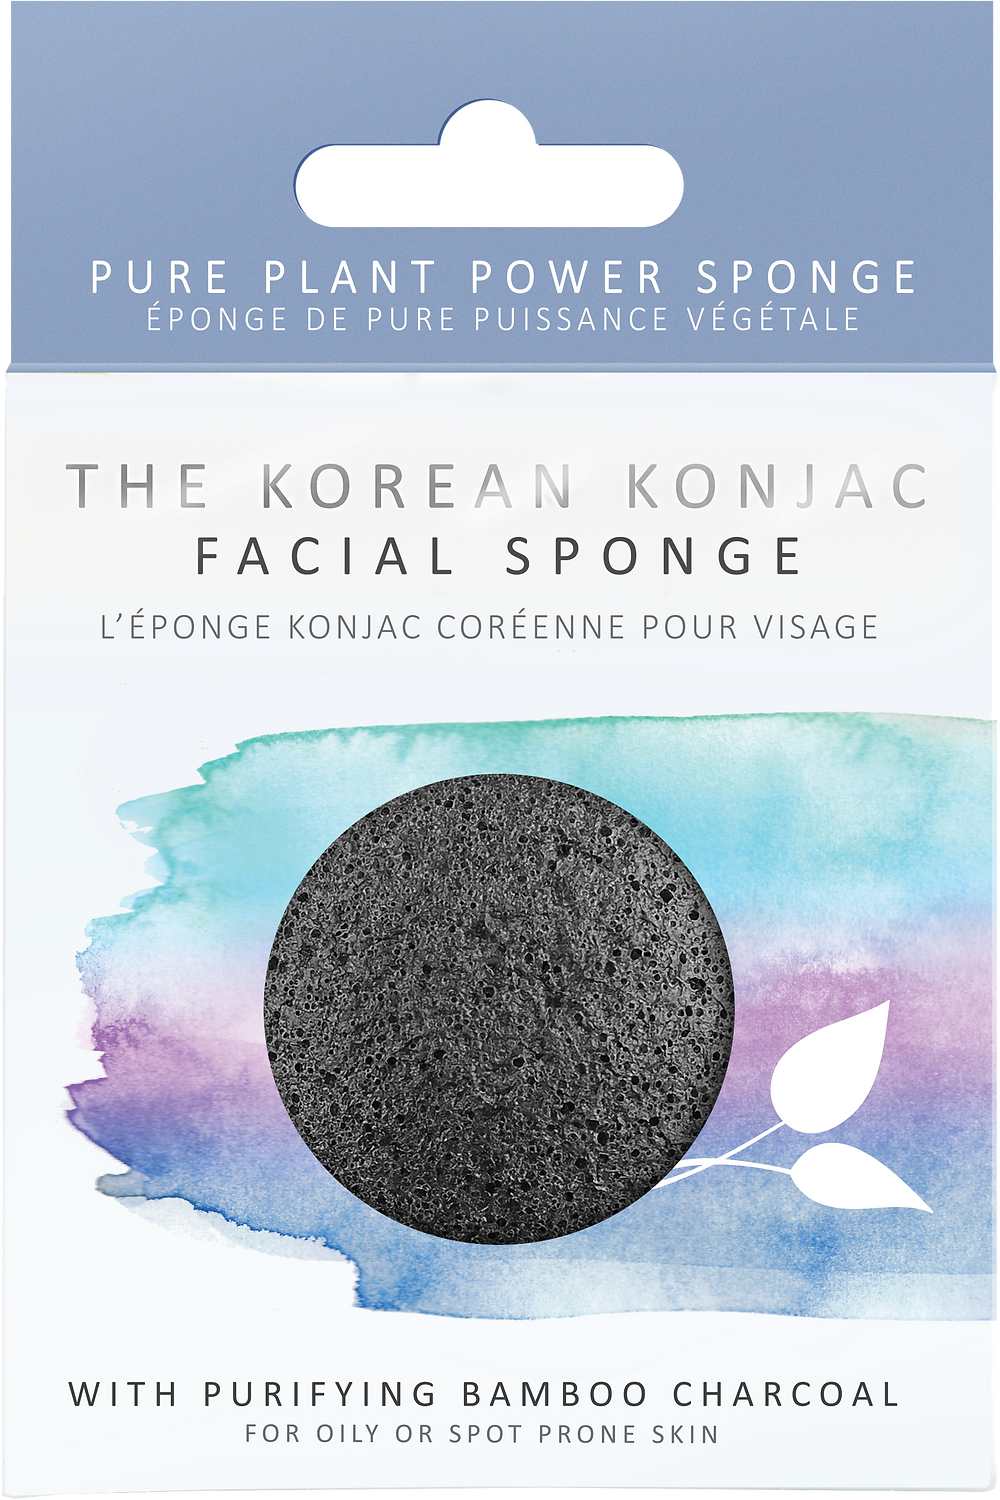 Konjac Facial Sponge infused with Bamboo Charcoal